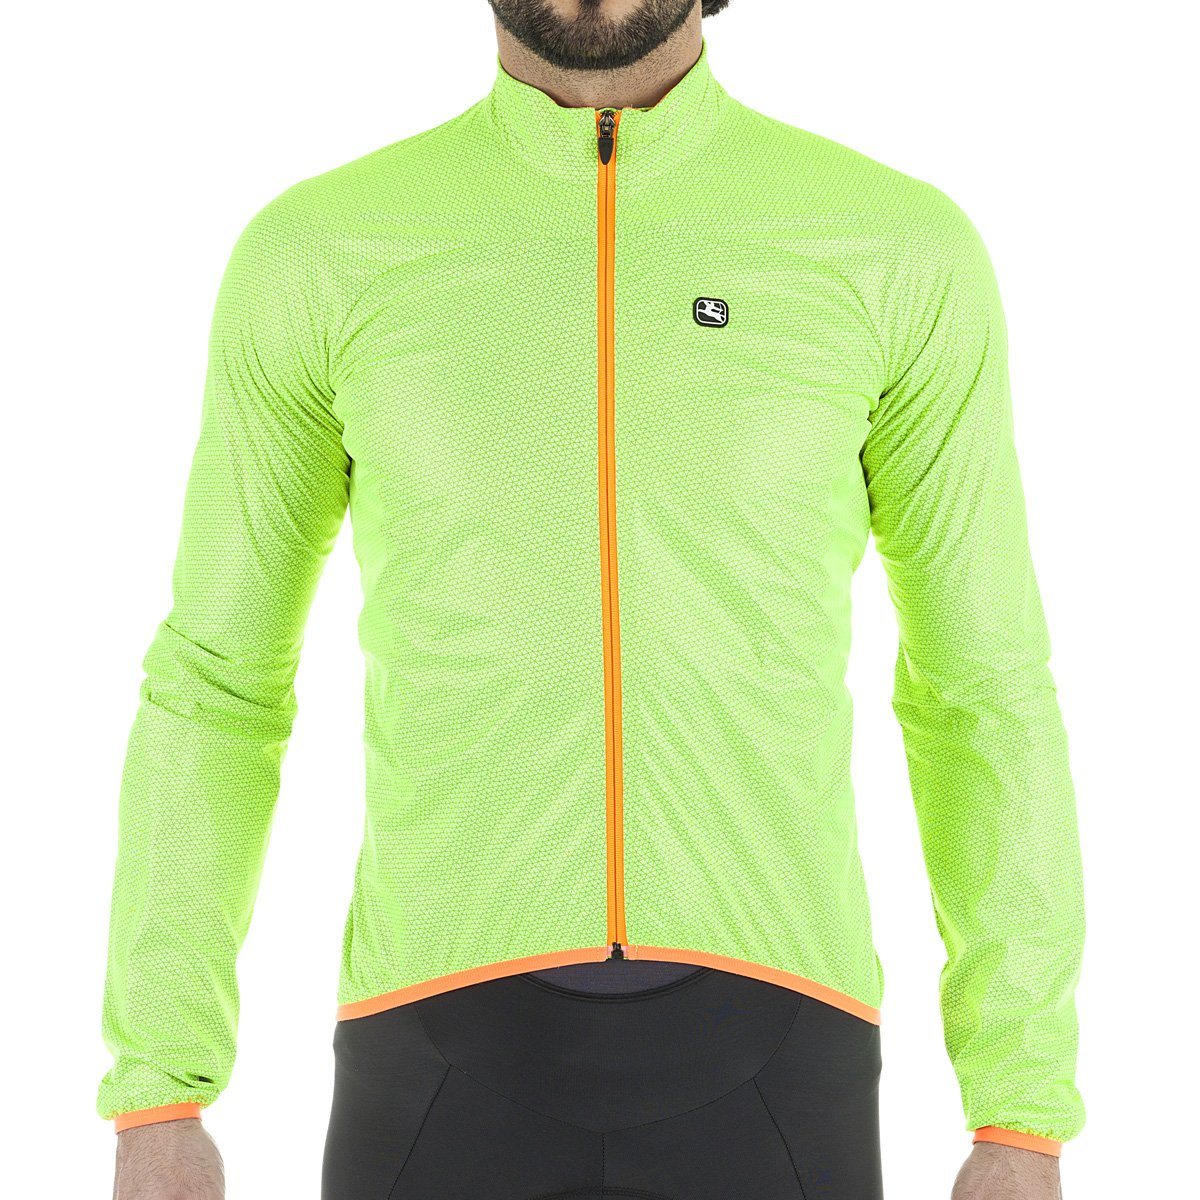 正規 Giordana Monsoonシェルジャケット Giordana – Medium メンズ B01N5VAFIT Medium|Fluo Yellow/Orange B01N5VAFIT Fluo Yellow/Orange Medium, シラタキムラ:3f4ee263 --- mail.mrplusfm.net